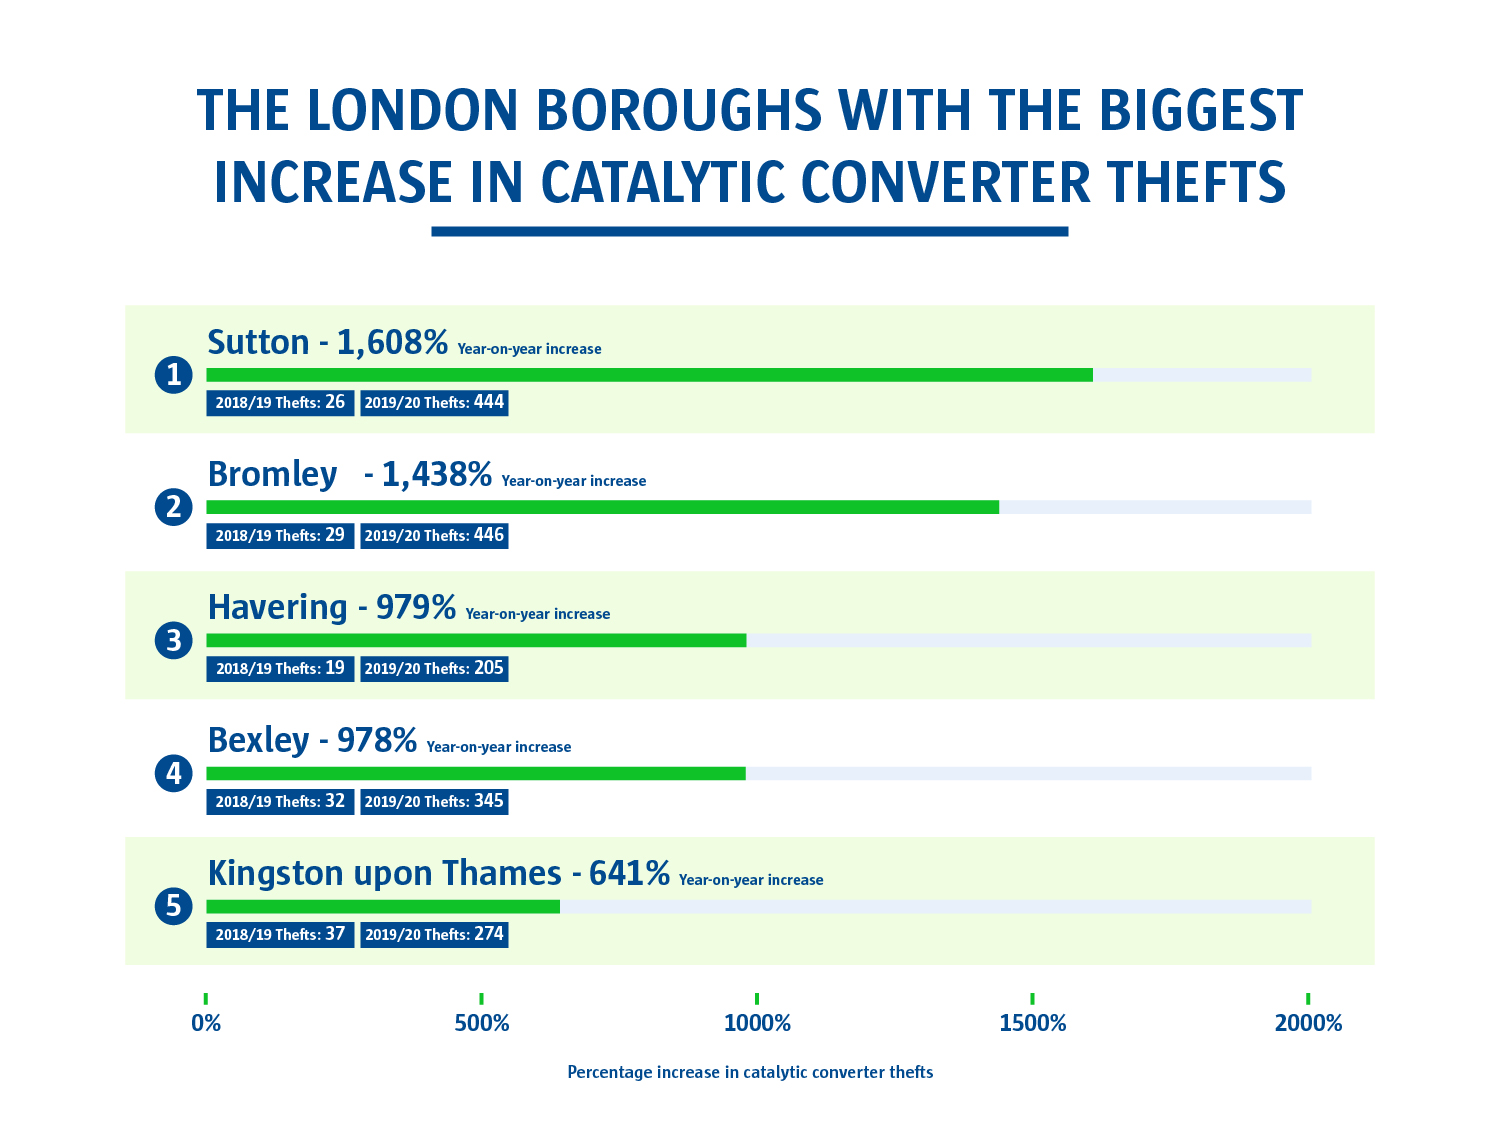 The London boroughs with the biggest increase in catalytic converter thefts. Sutton had the biggest increase whilst Kingston upon Thames had a 641% year on year increase.